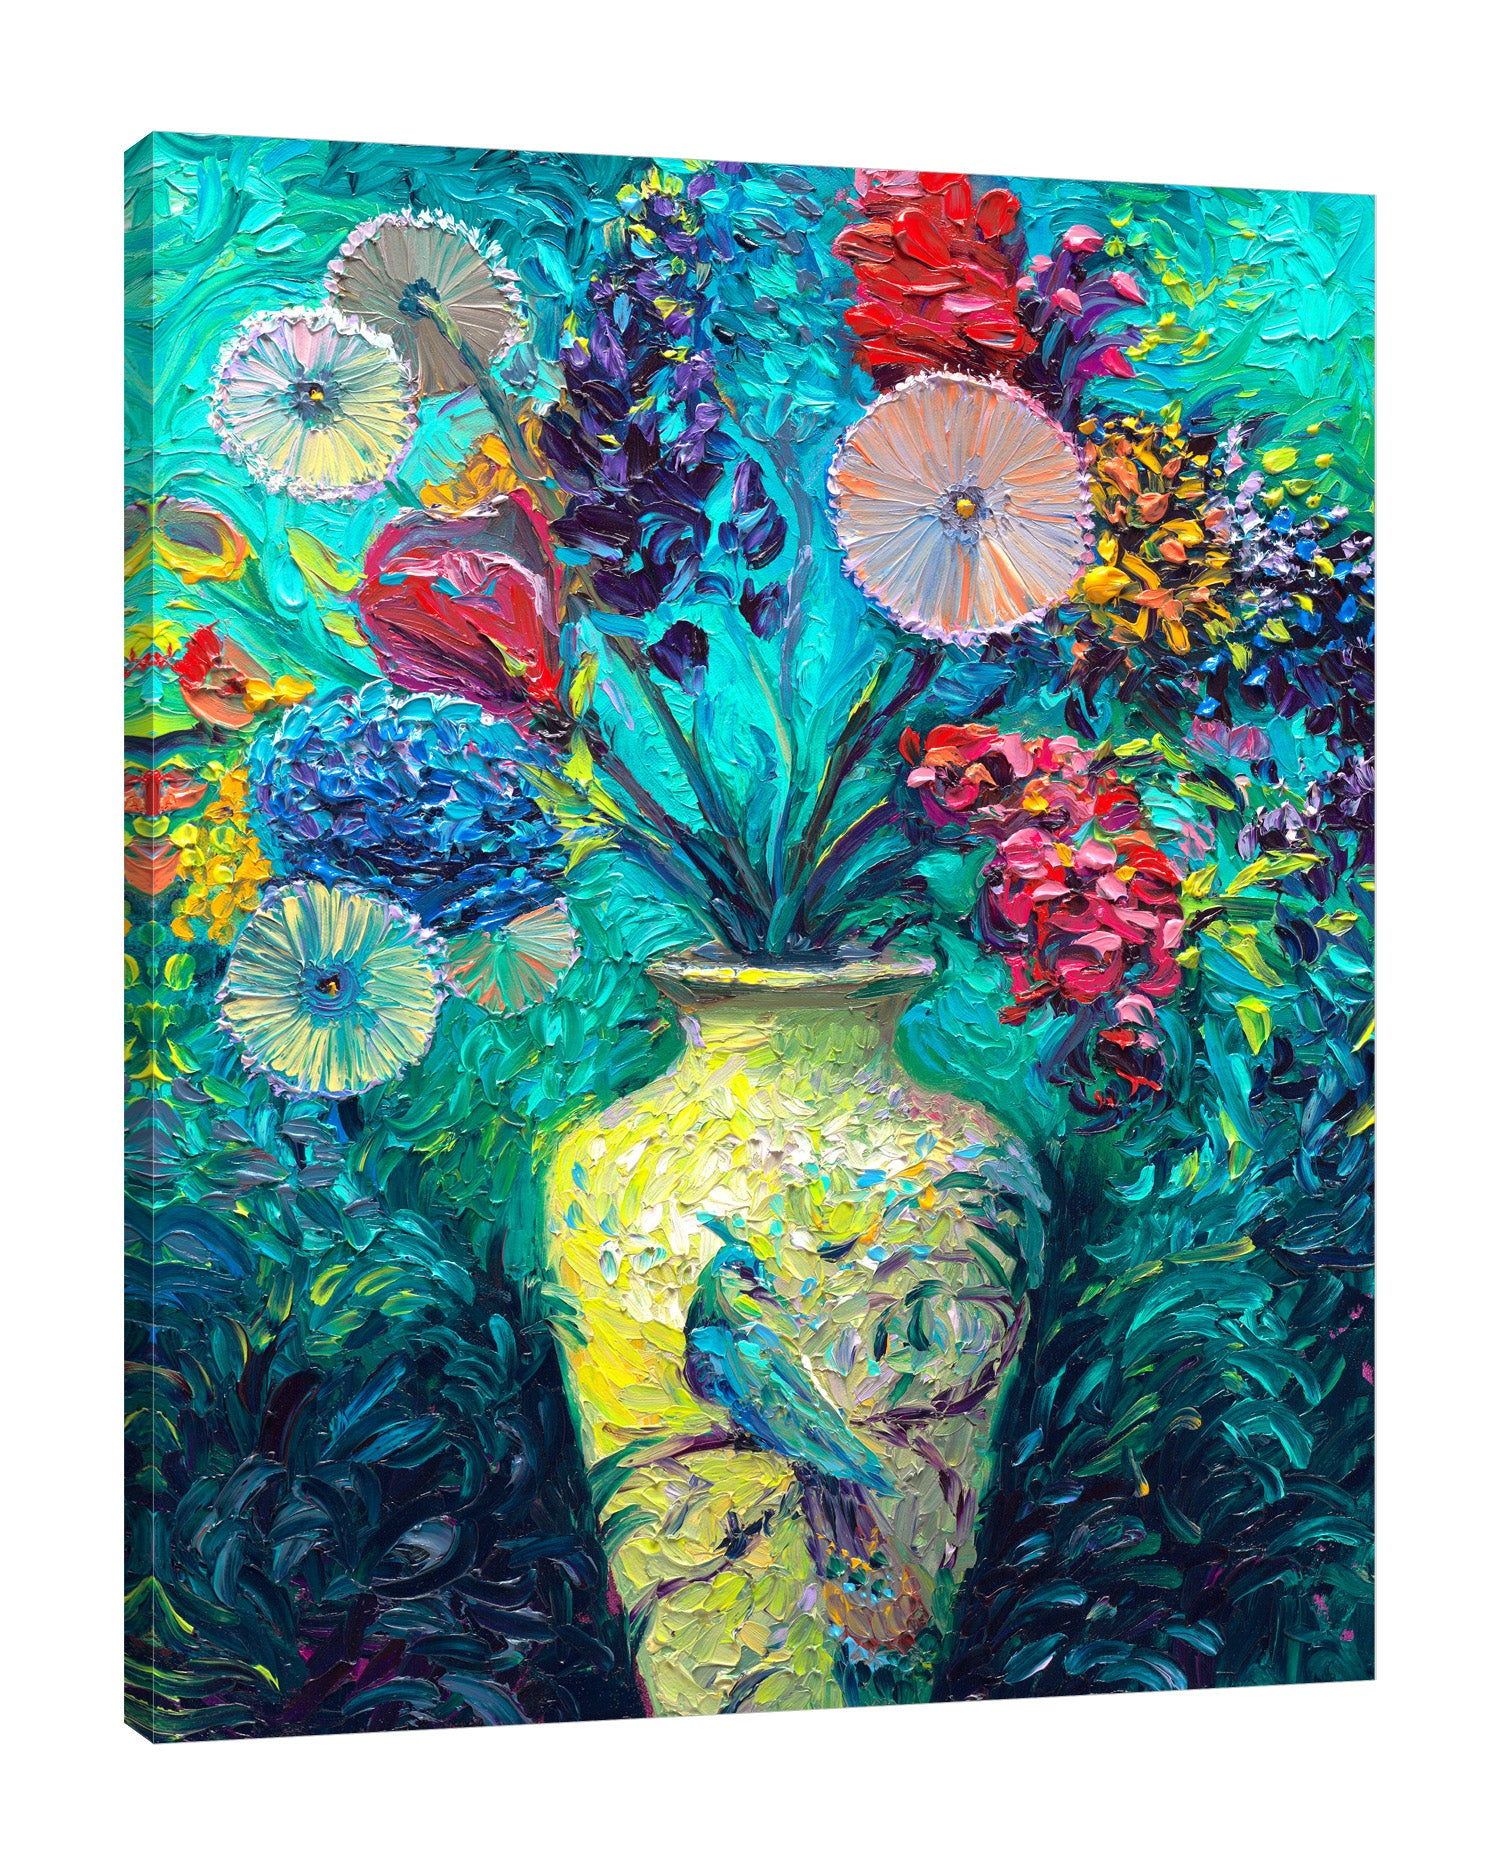 Iris-Scott,Modern & Contemporary,Floral & Botanical,Animals,florals,floral,flowers,flower,bouquet,bouquets,vases,vase,vessel,vessels,peacock,peacocks,animals,animal,strokes,bloom,